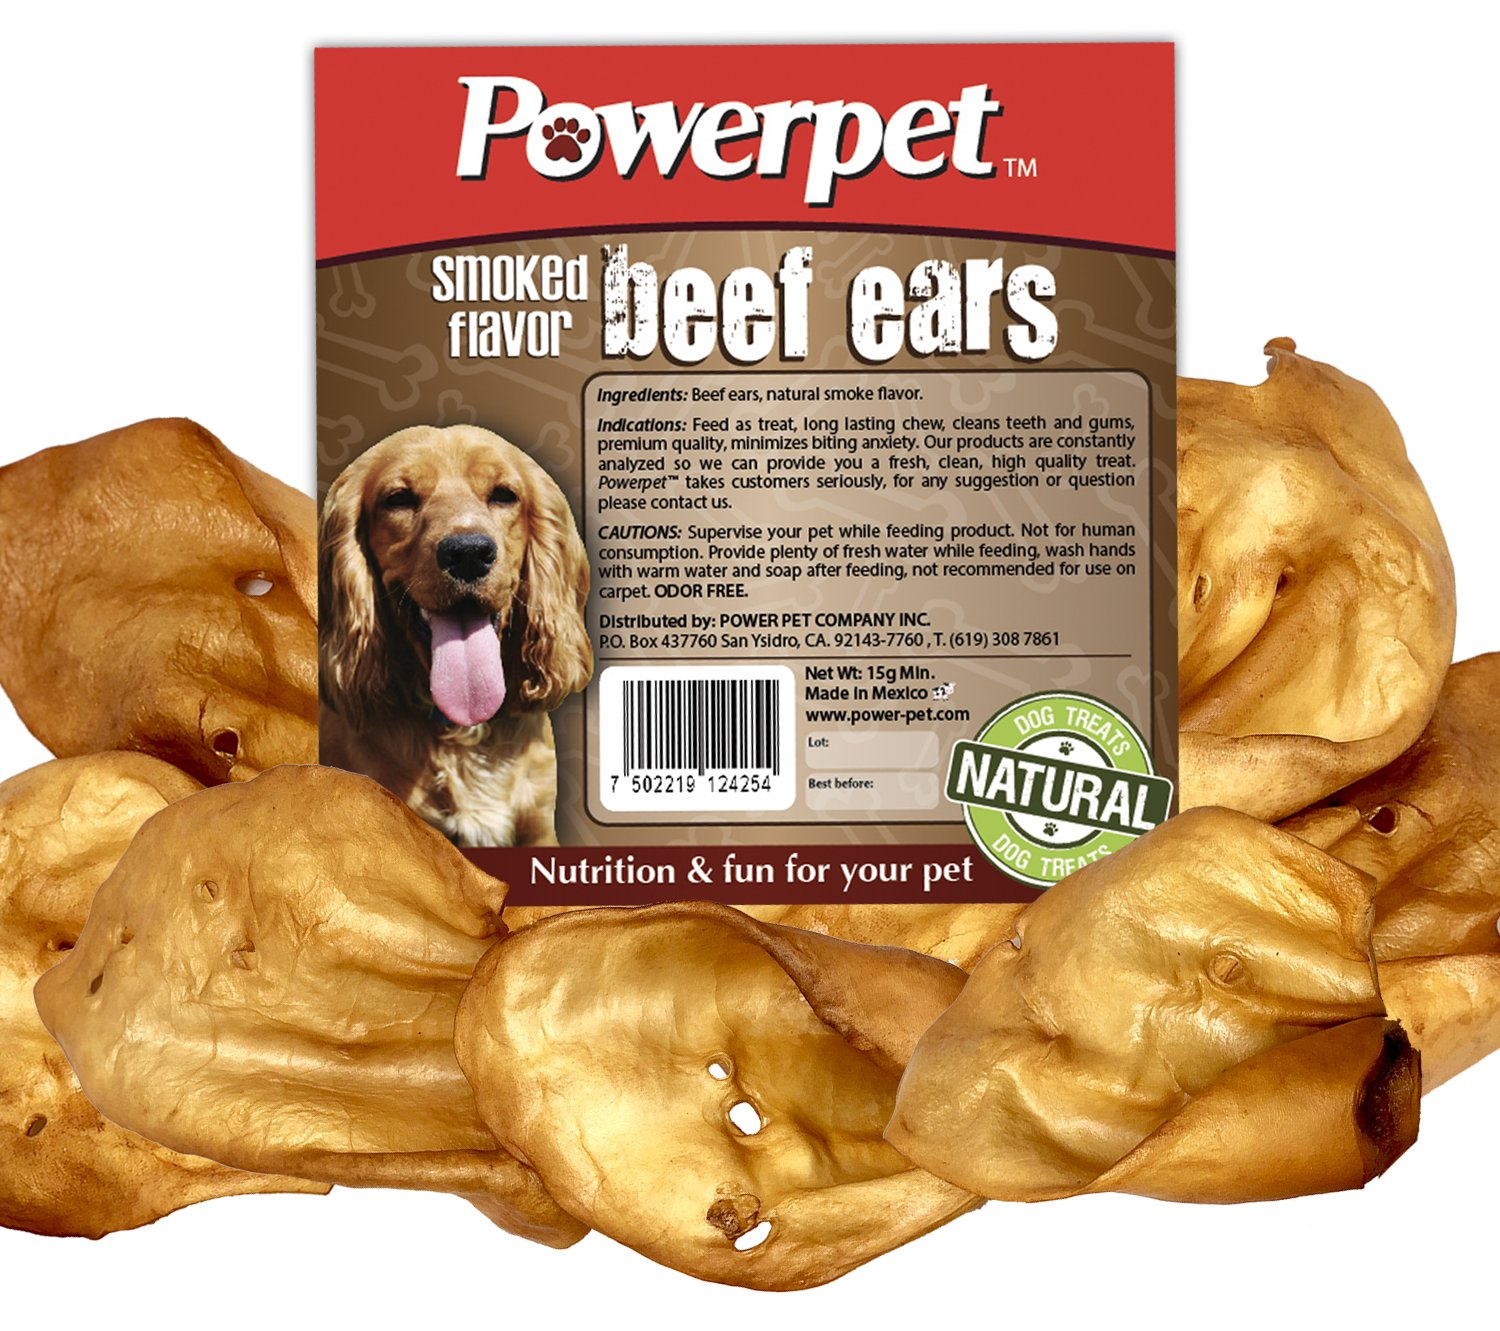 Powerpet 100% Natural Cow Ears for Dogs (100 Pack) (Smoked) by Powerpet